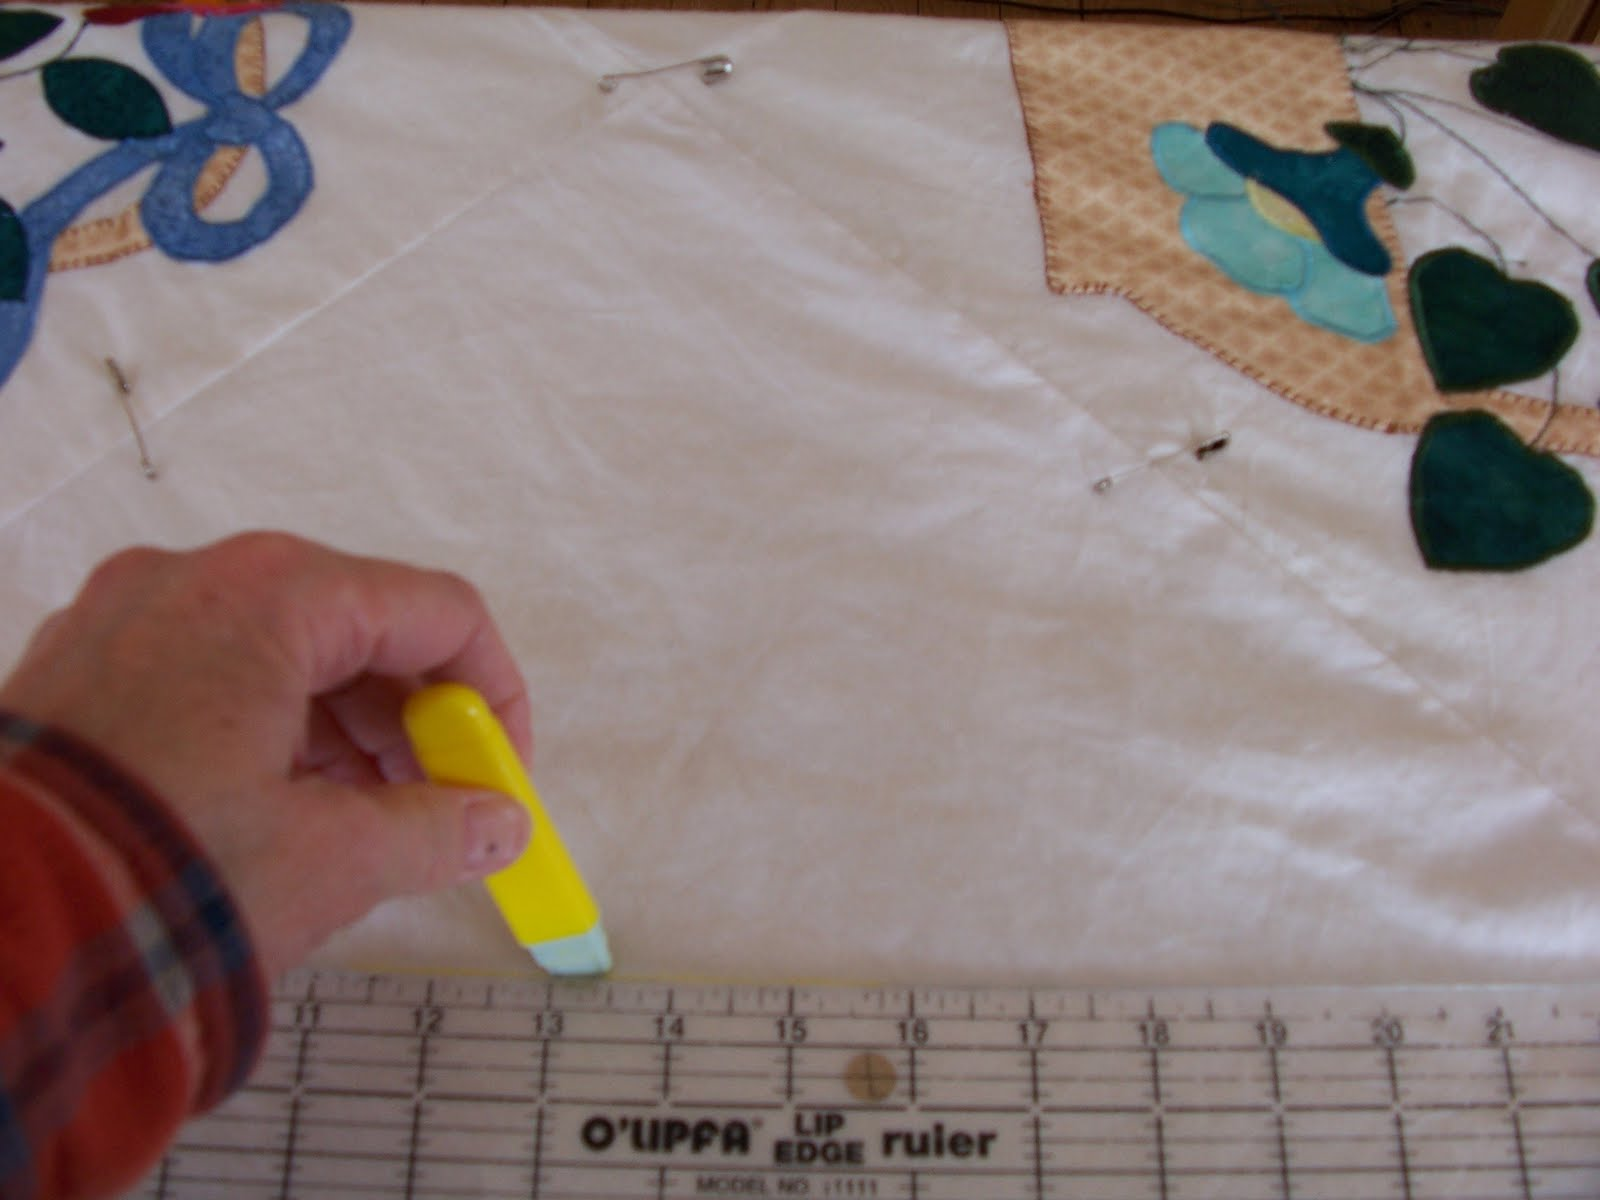 Drawing Lines For Quilting : Michigan loony loomer drawing a line design for quilting